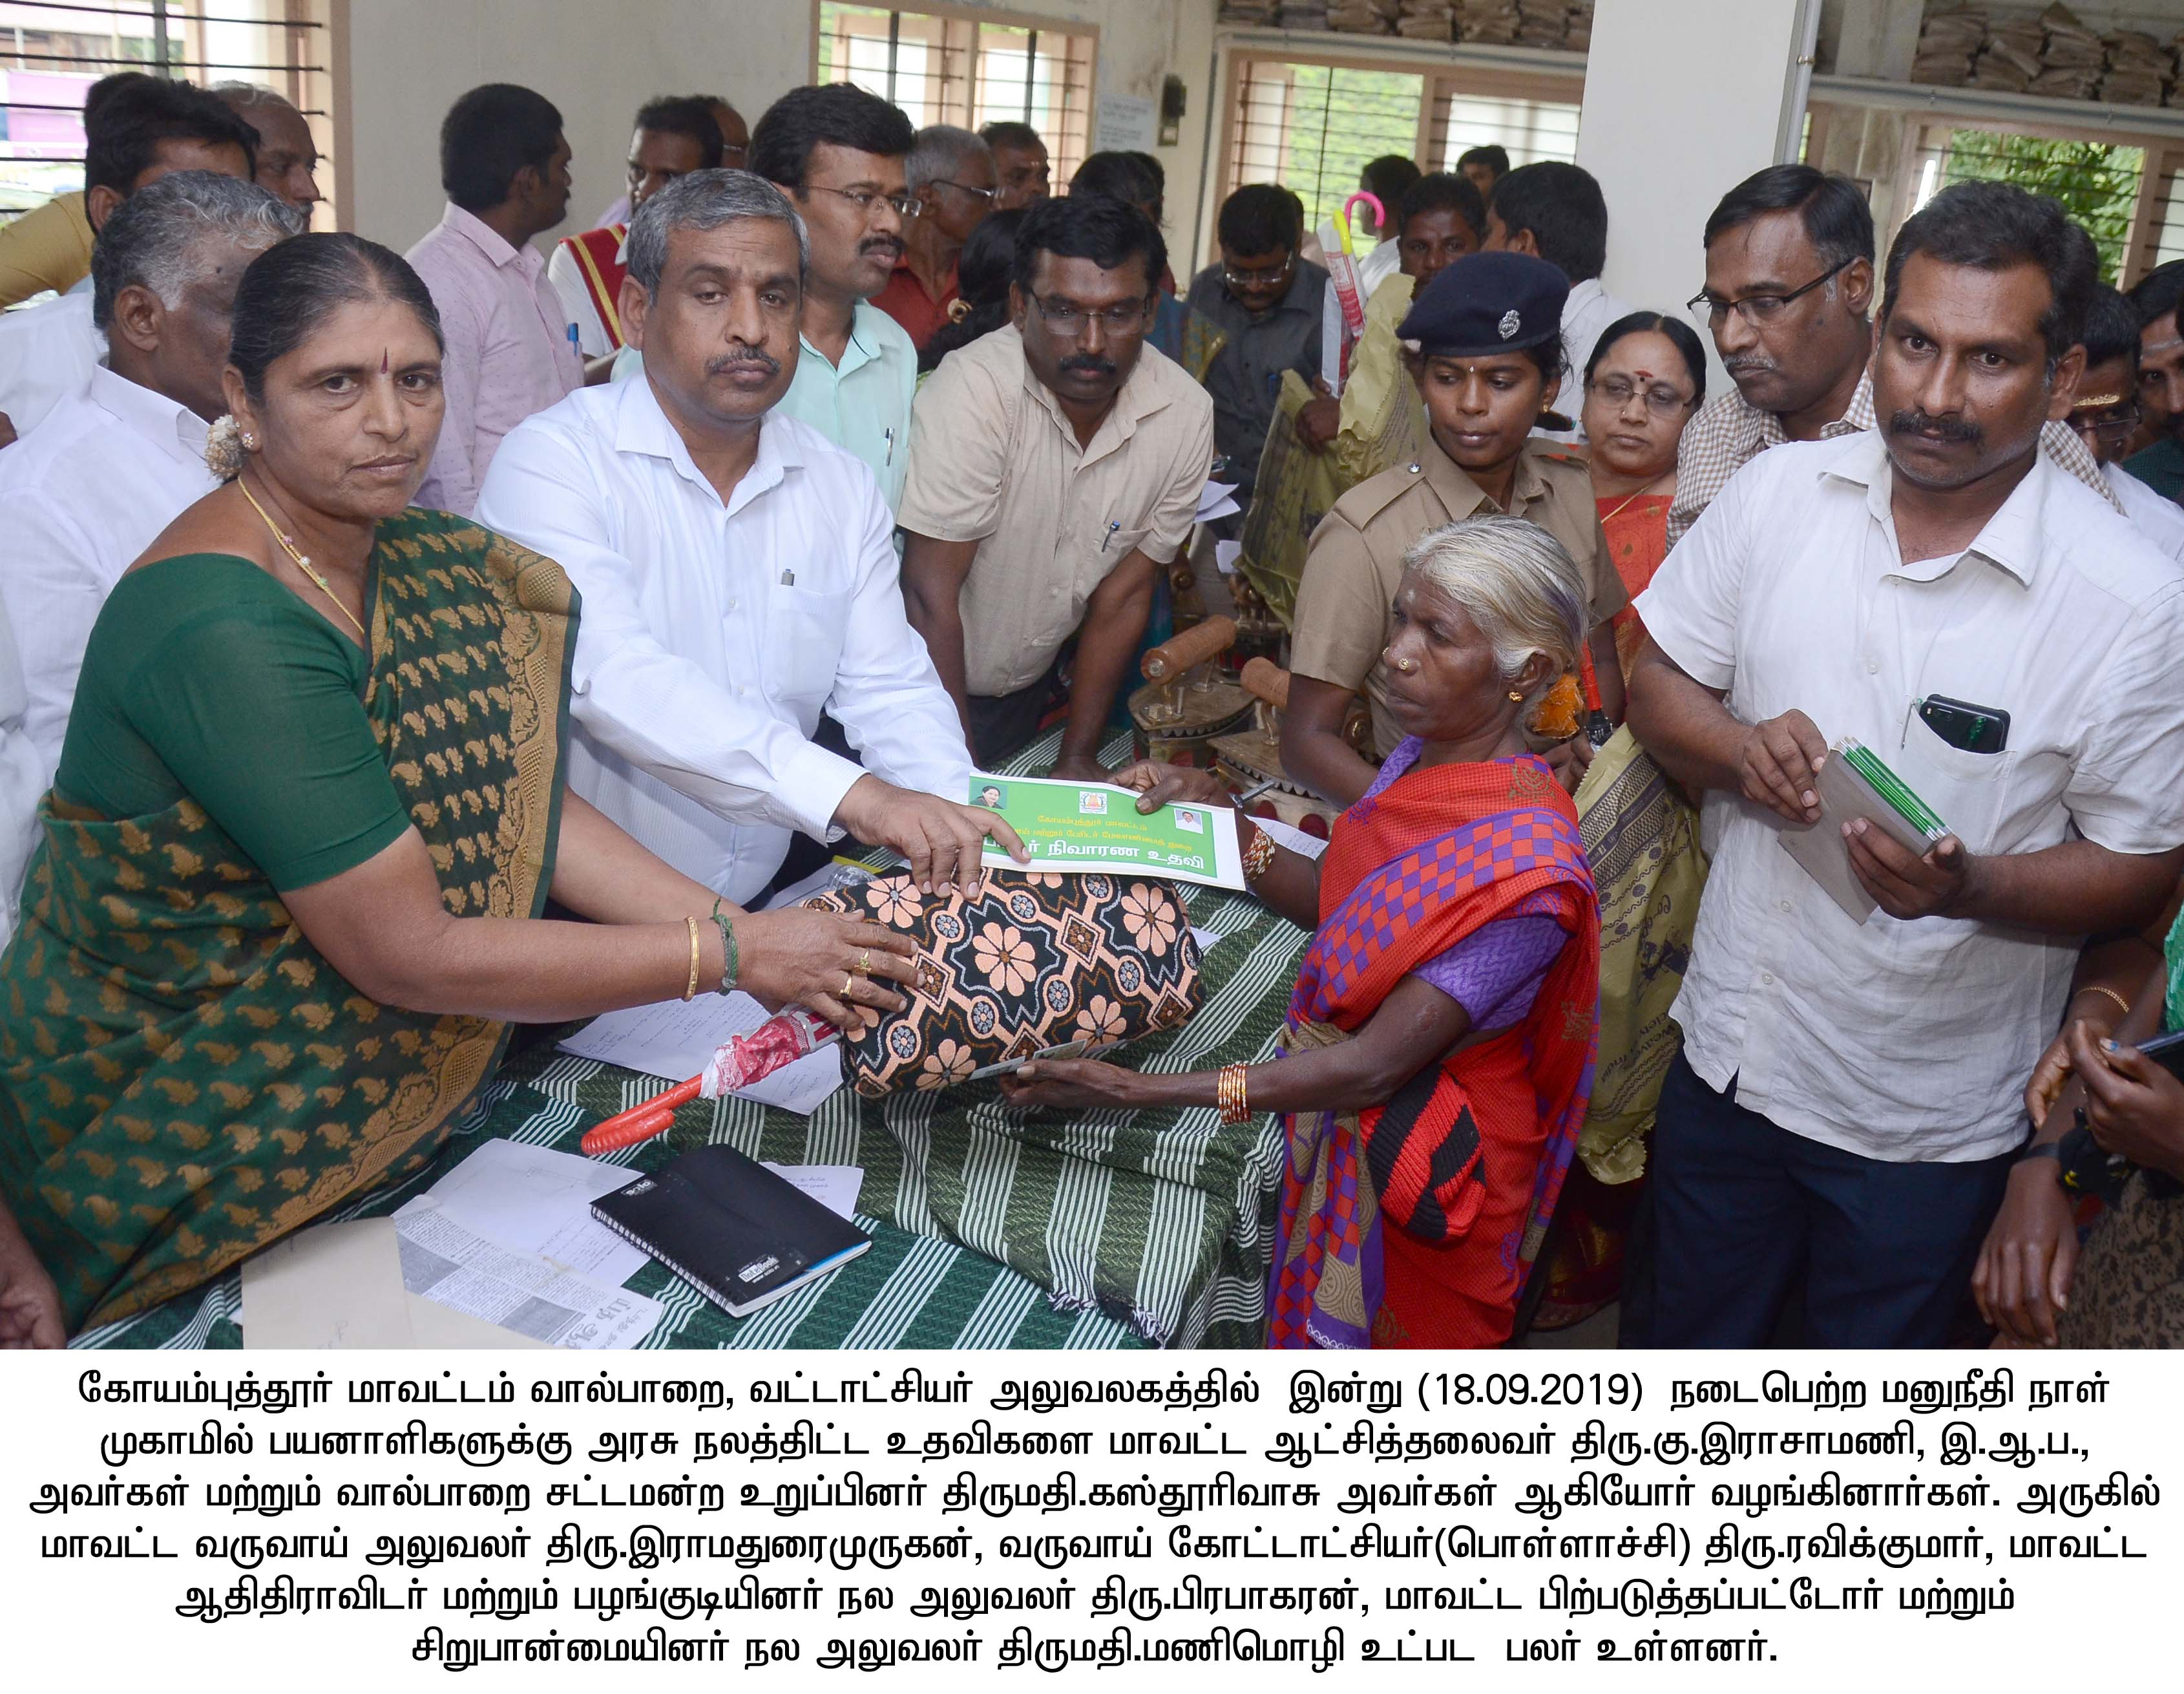 Mass contact programme held at Valparai